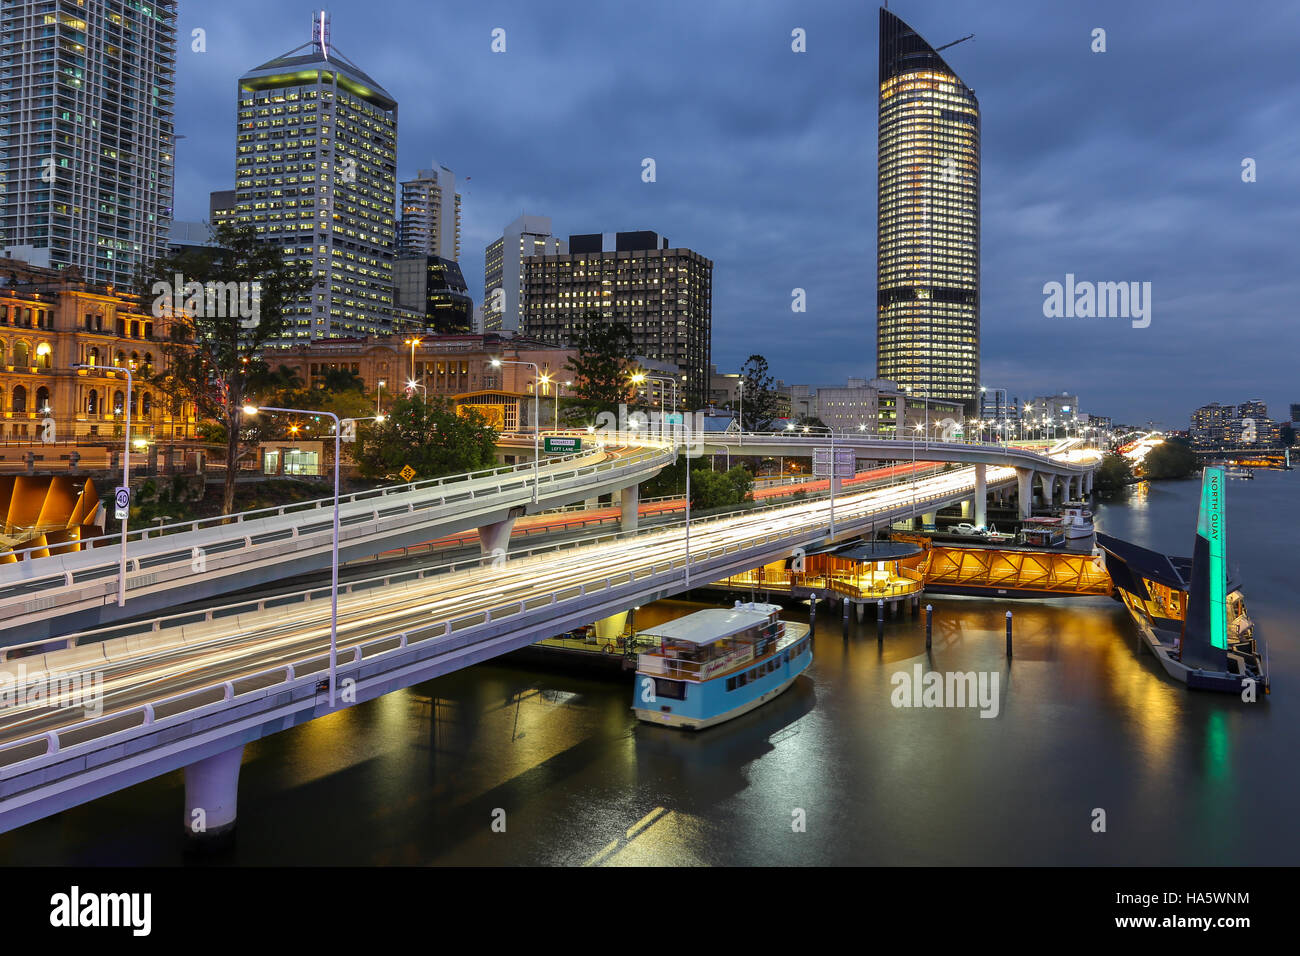 Brisbane city motorway M3 at night time with headlight streaks - Stock Image